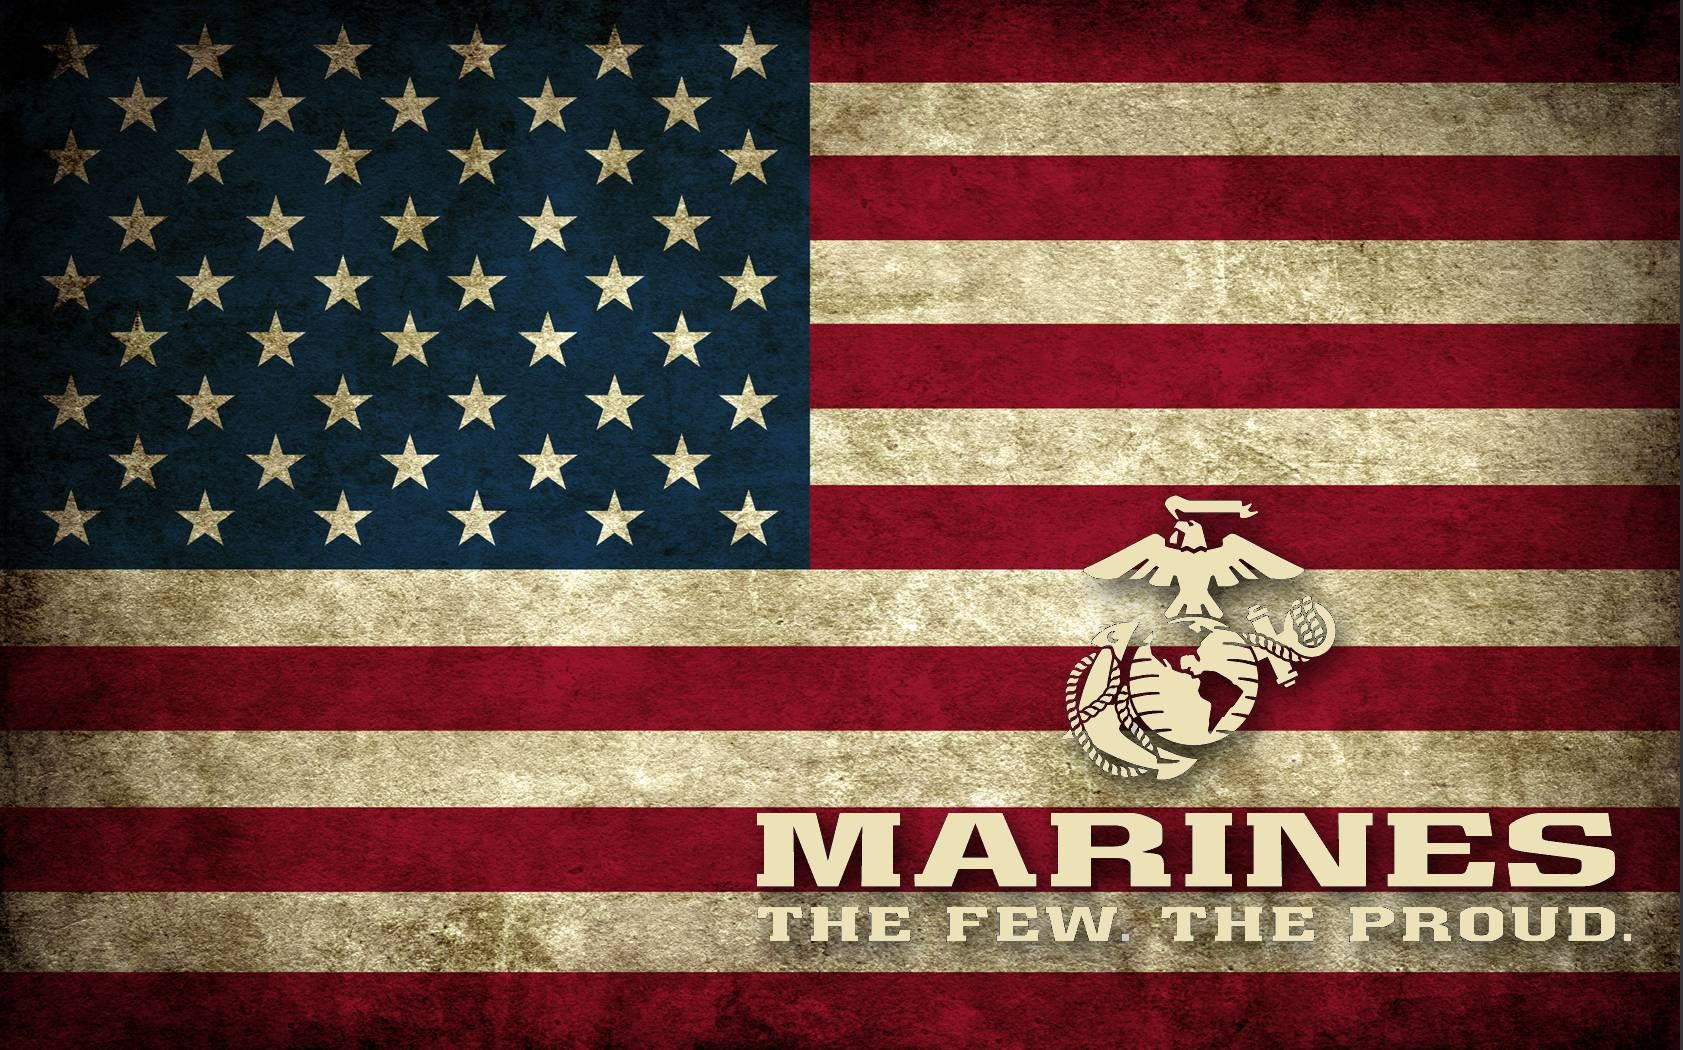 Marine Corps Wallpaper Collection 800×500 Us marine